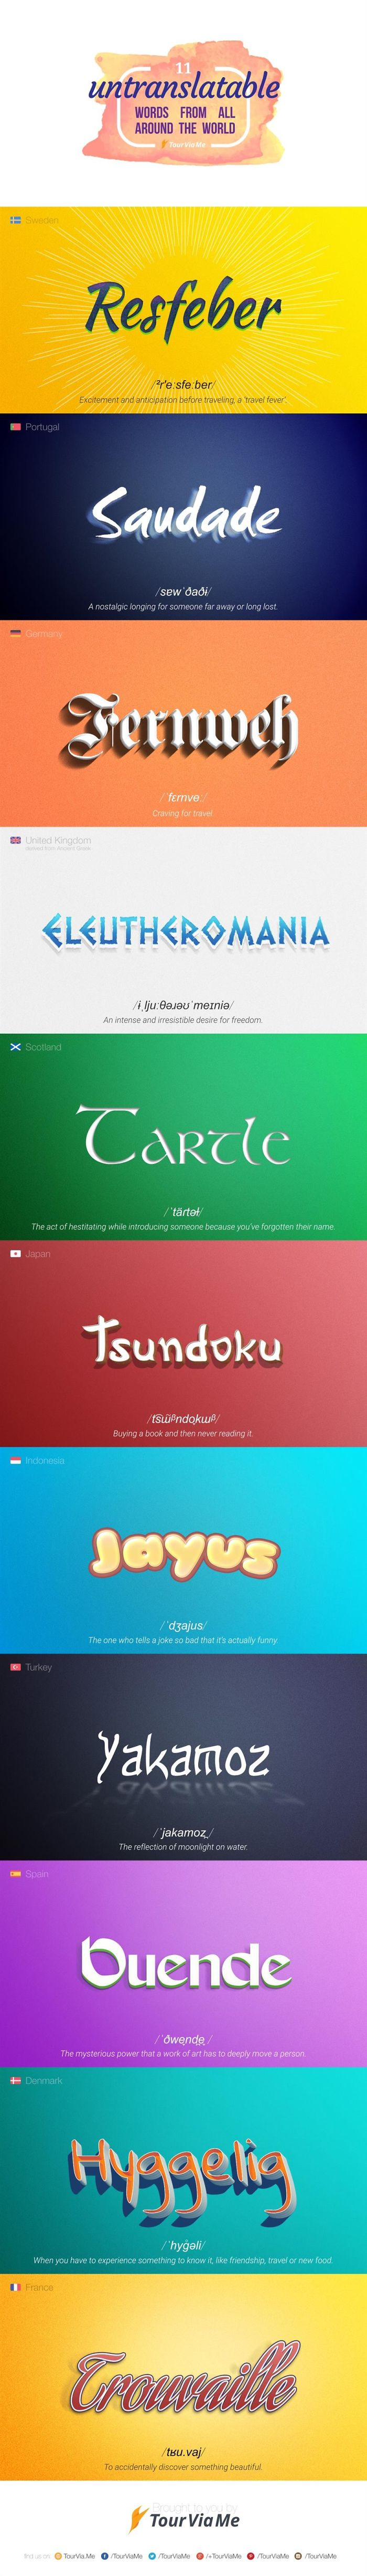 Beautifully Designed! 11 Untranslatable Words From All Around The World